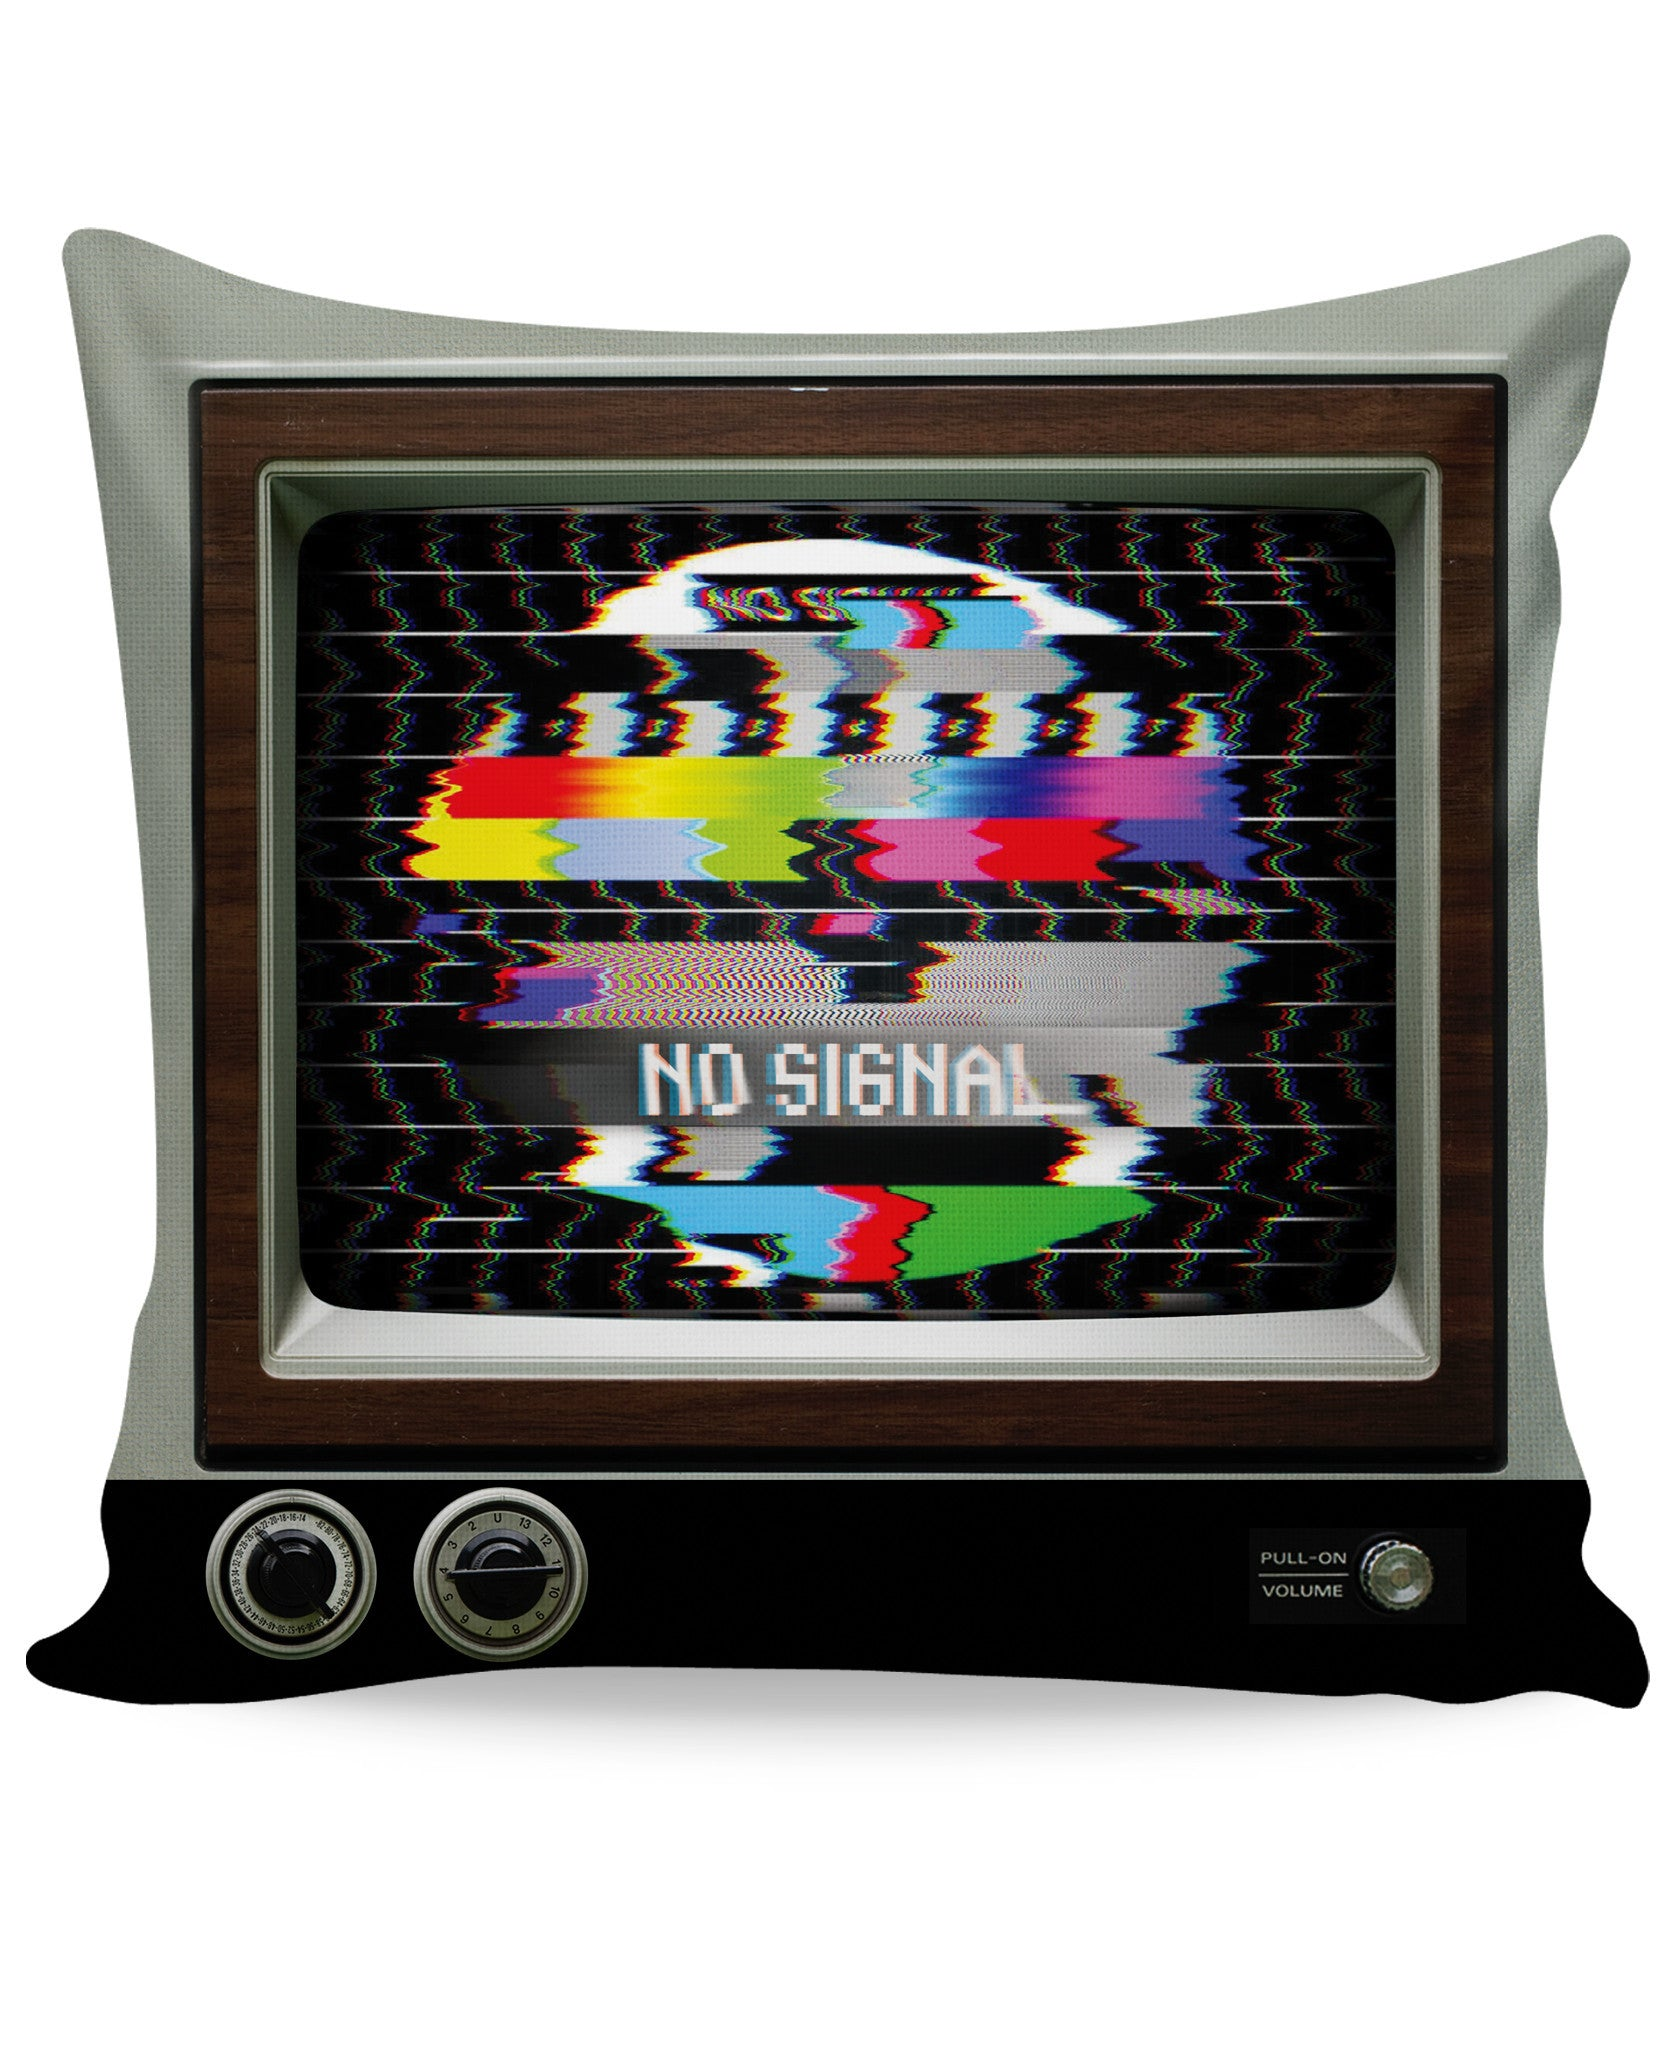 Lost Signal Couch Pillow